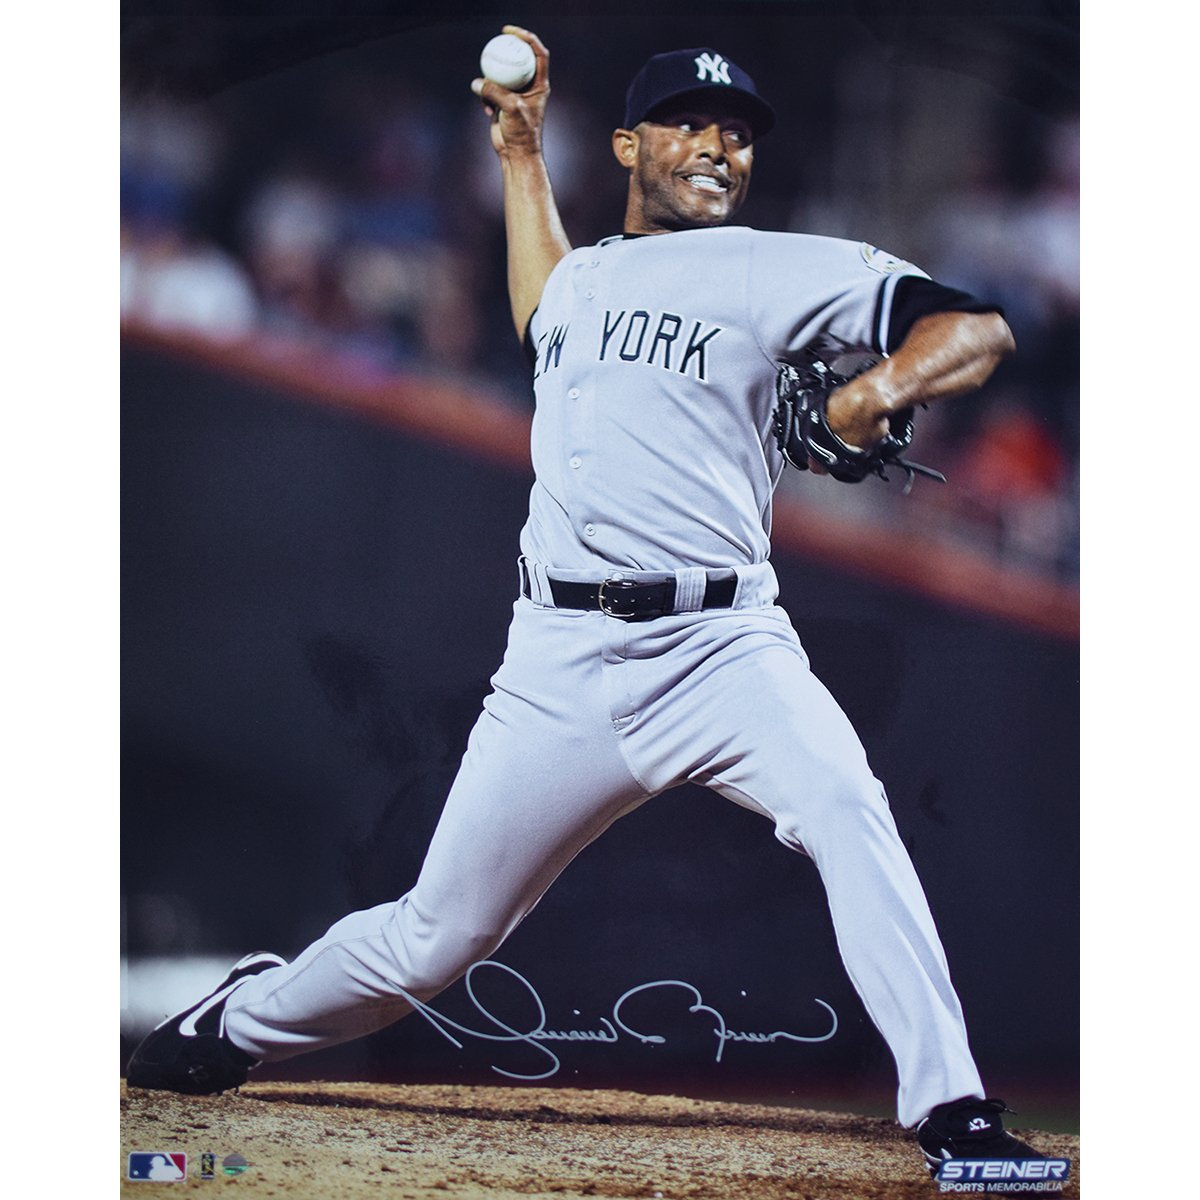 8f65a2e0 Mariano Rivera New York Yankees Signed 500th Career Save 16x20 Photograph